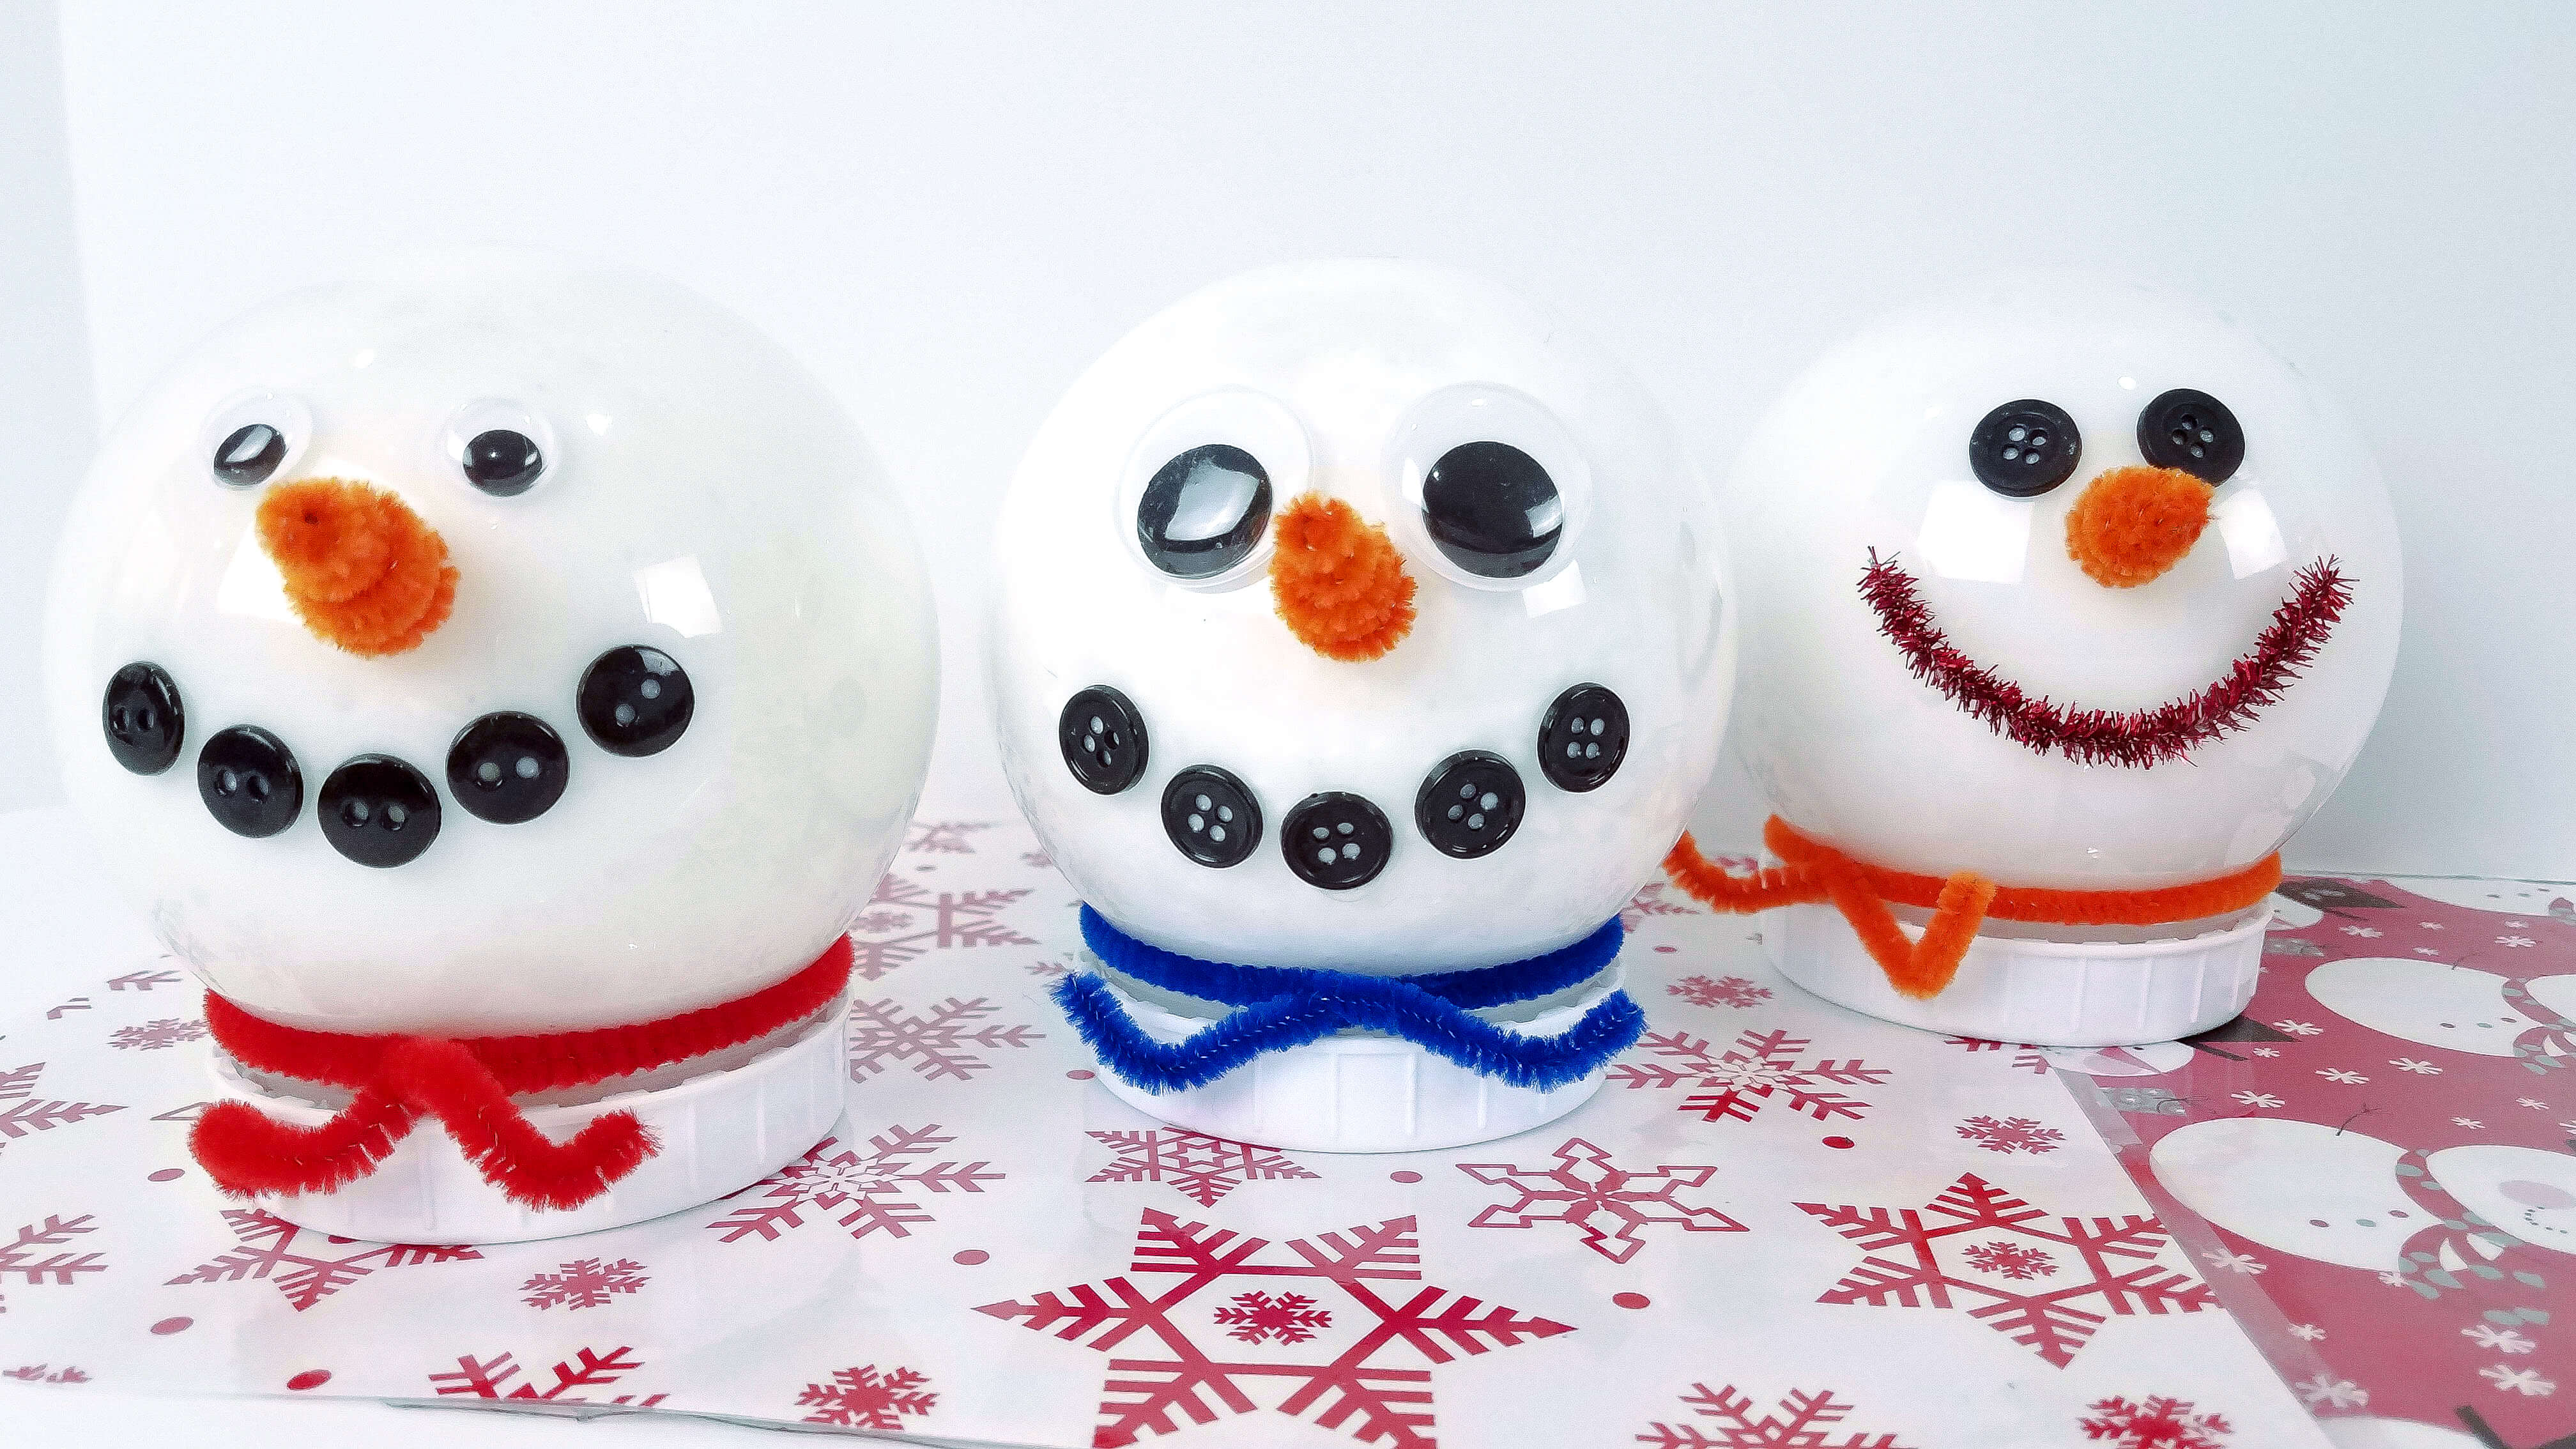 How to Make Snowman Slime – 3 Unique Snow Slime Recipes